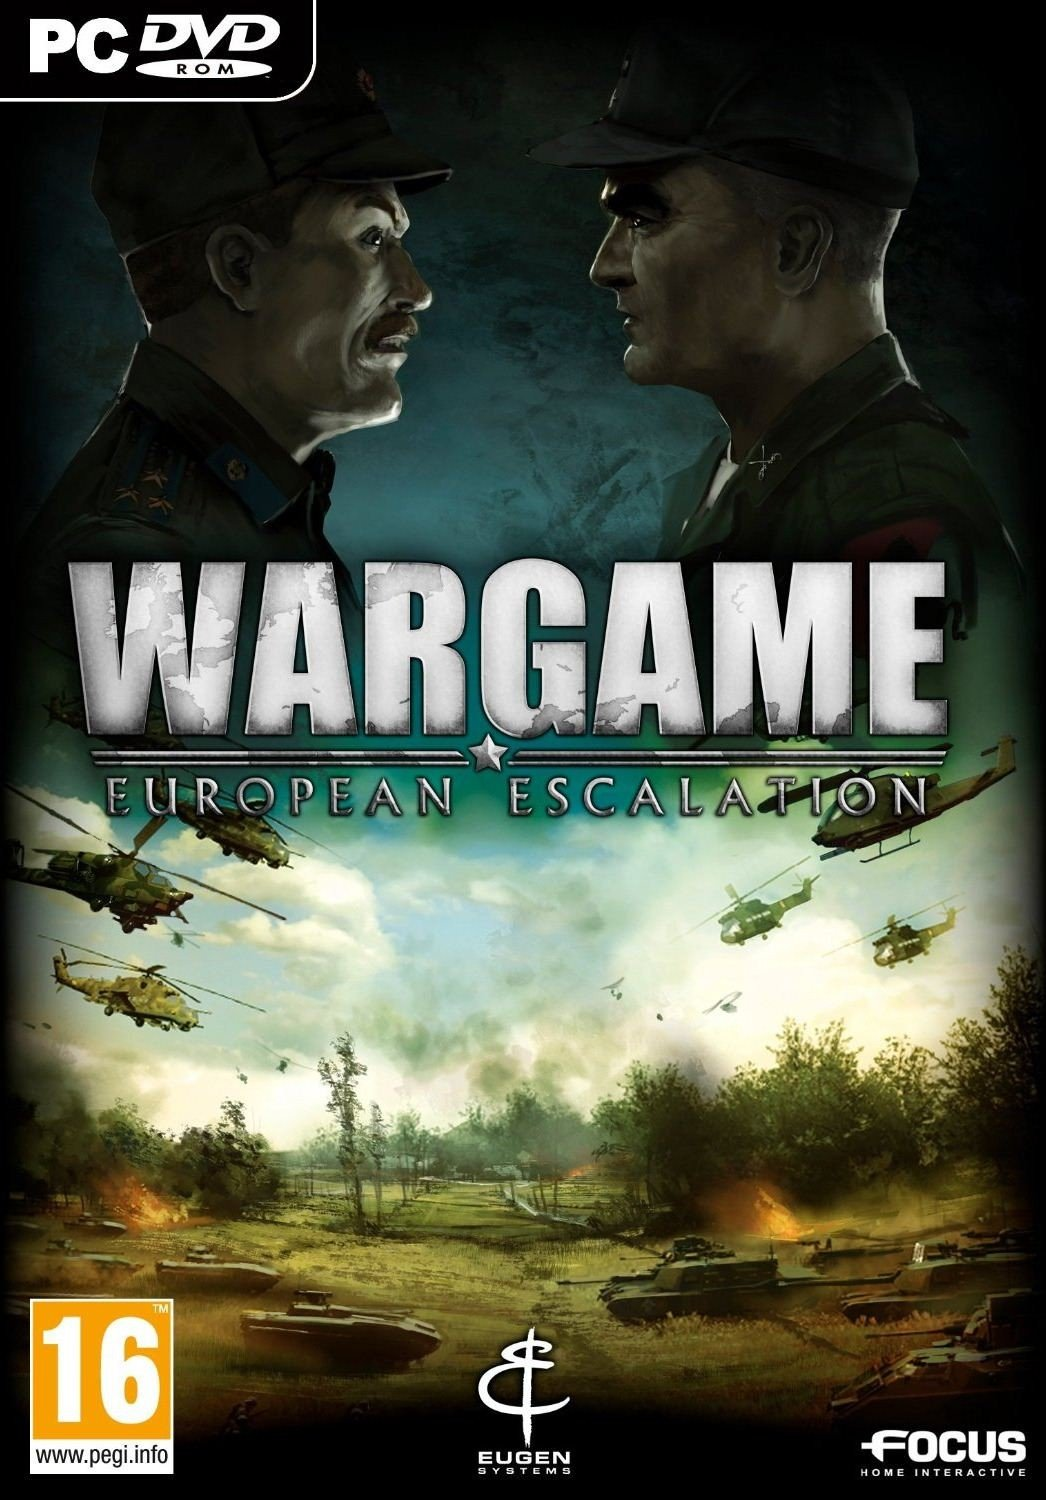 Wargame: European Escalation 战争游戏:欧洲扩张